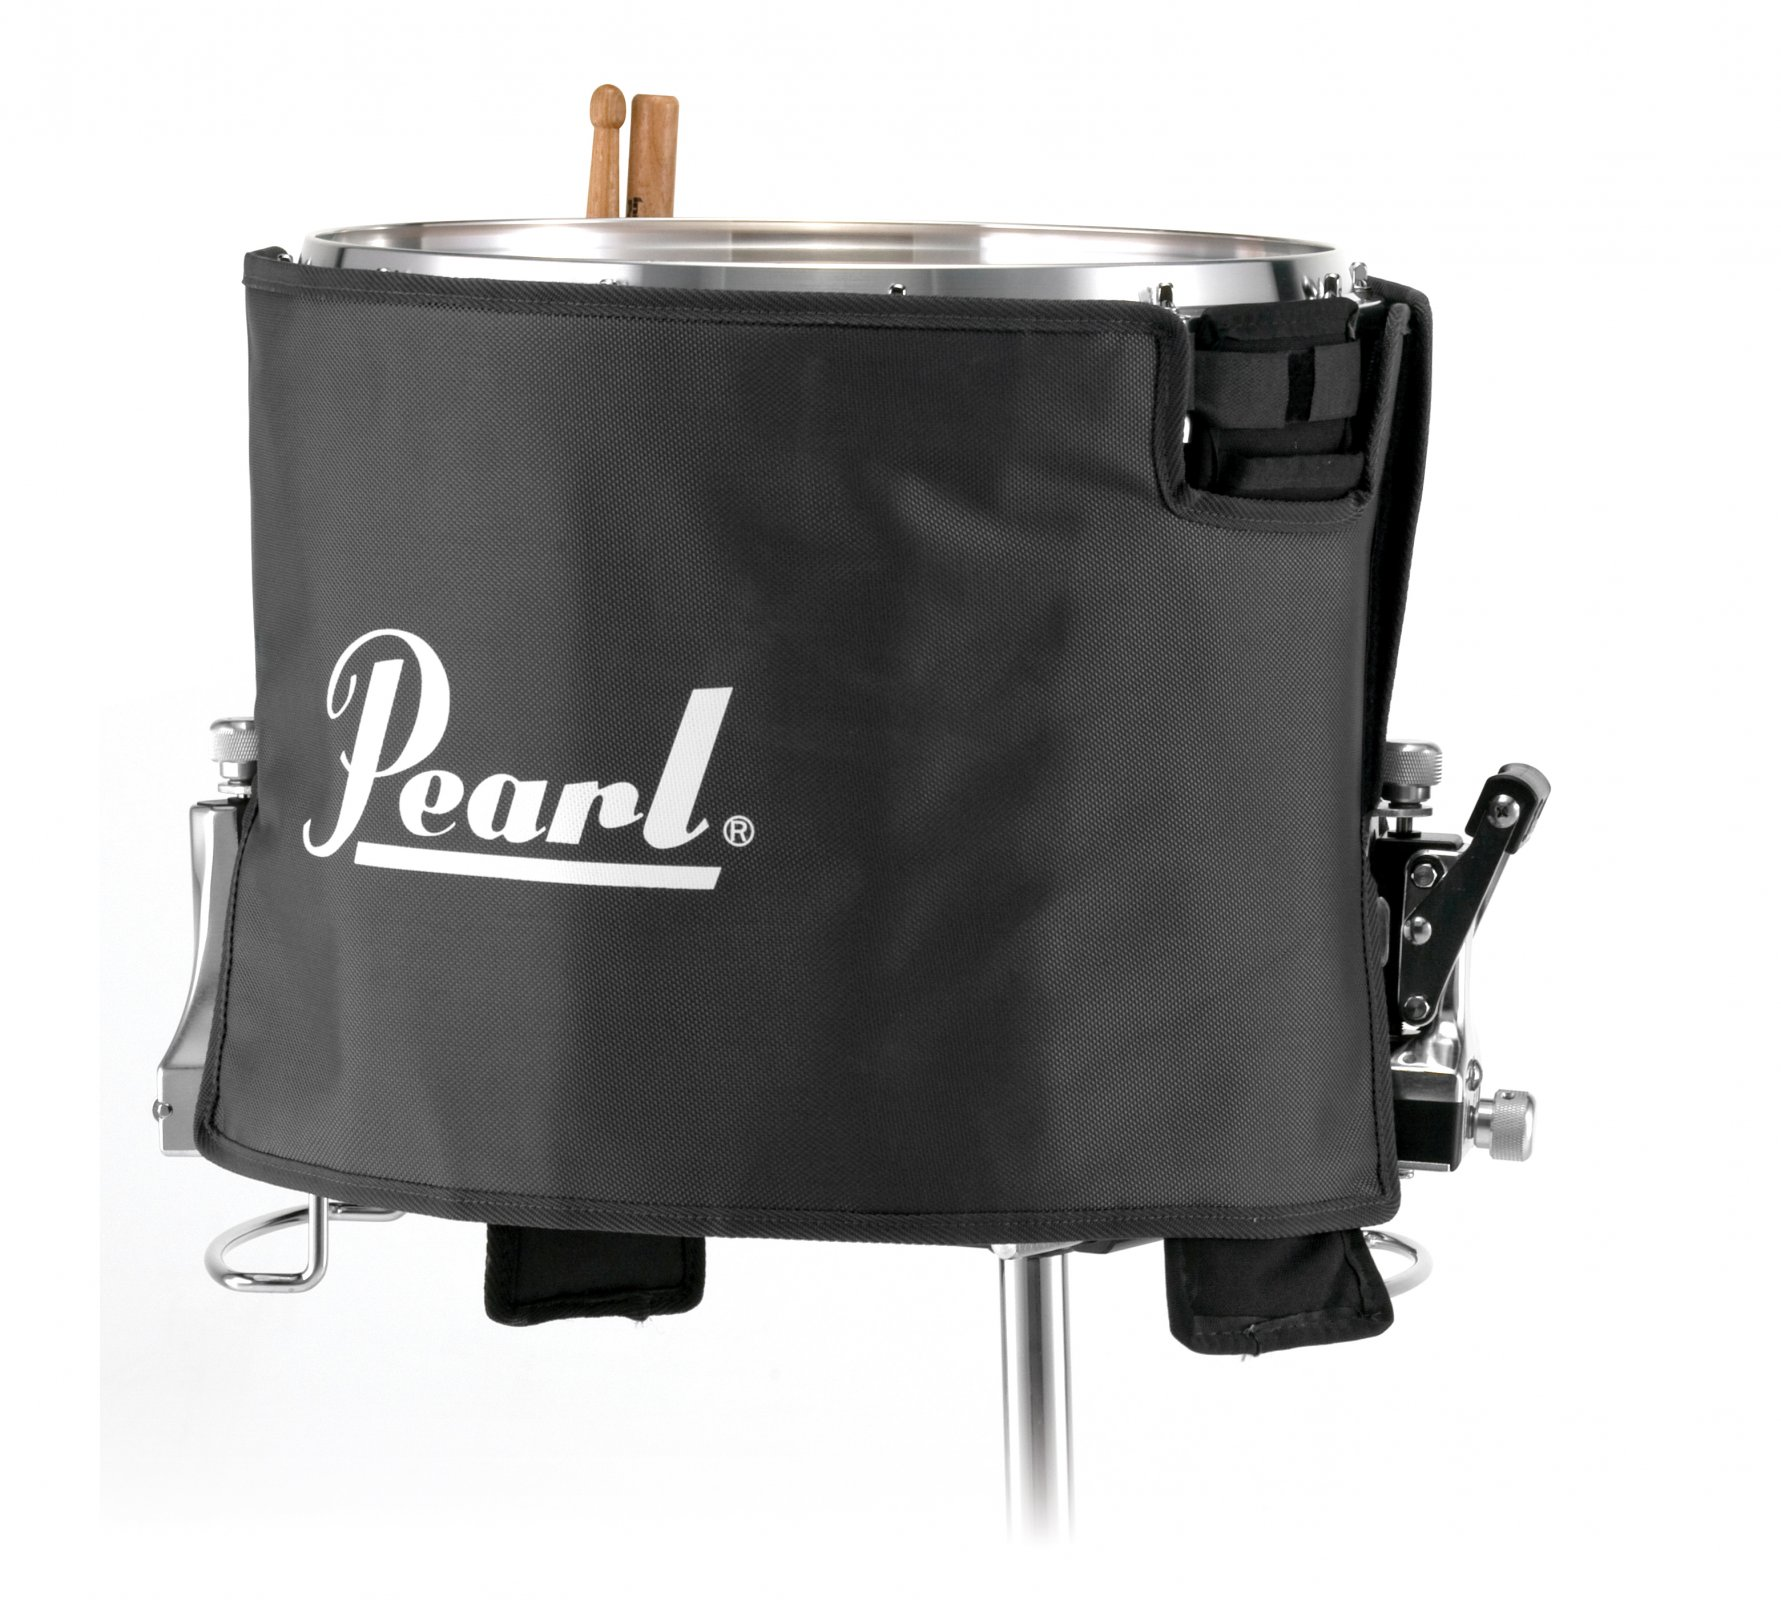 Pearl Marching Snare Drum Cover - USED